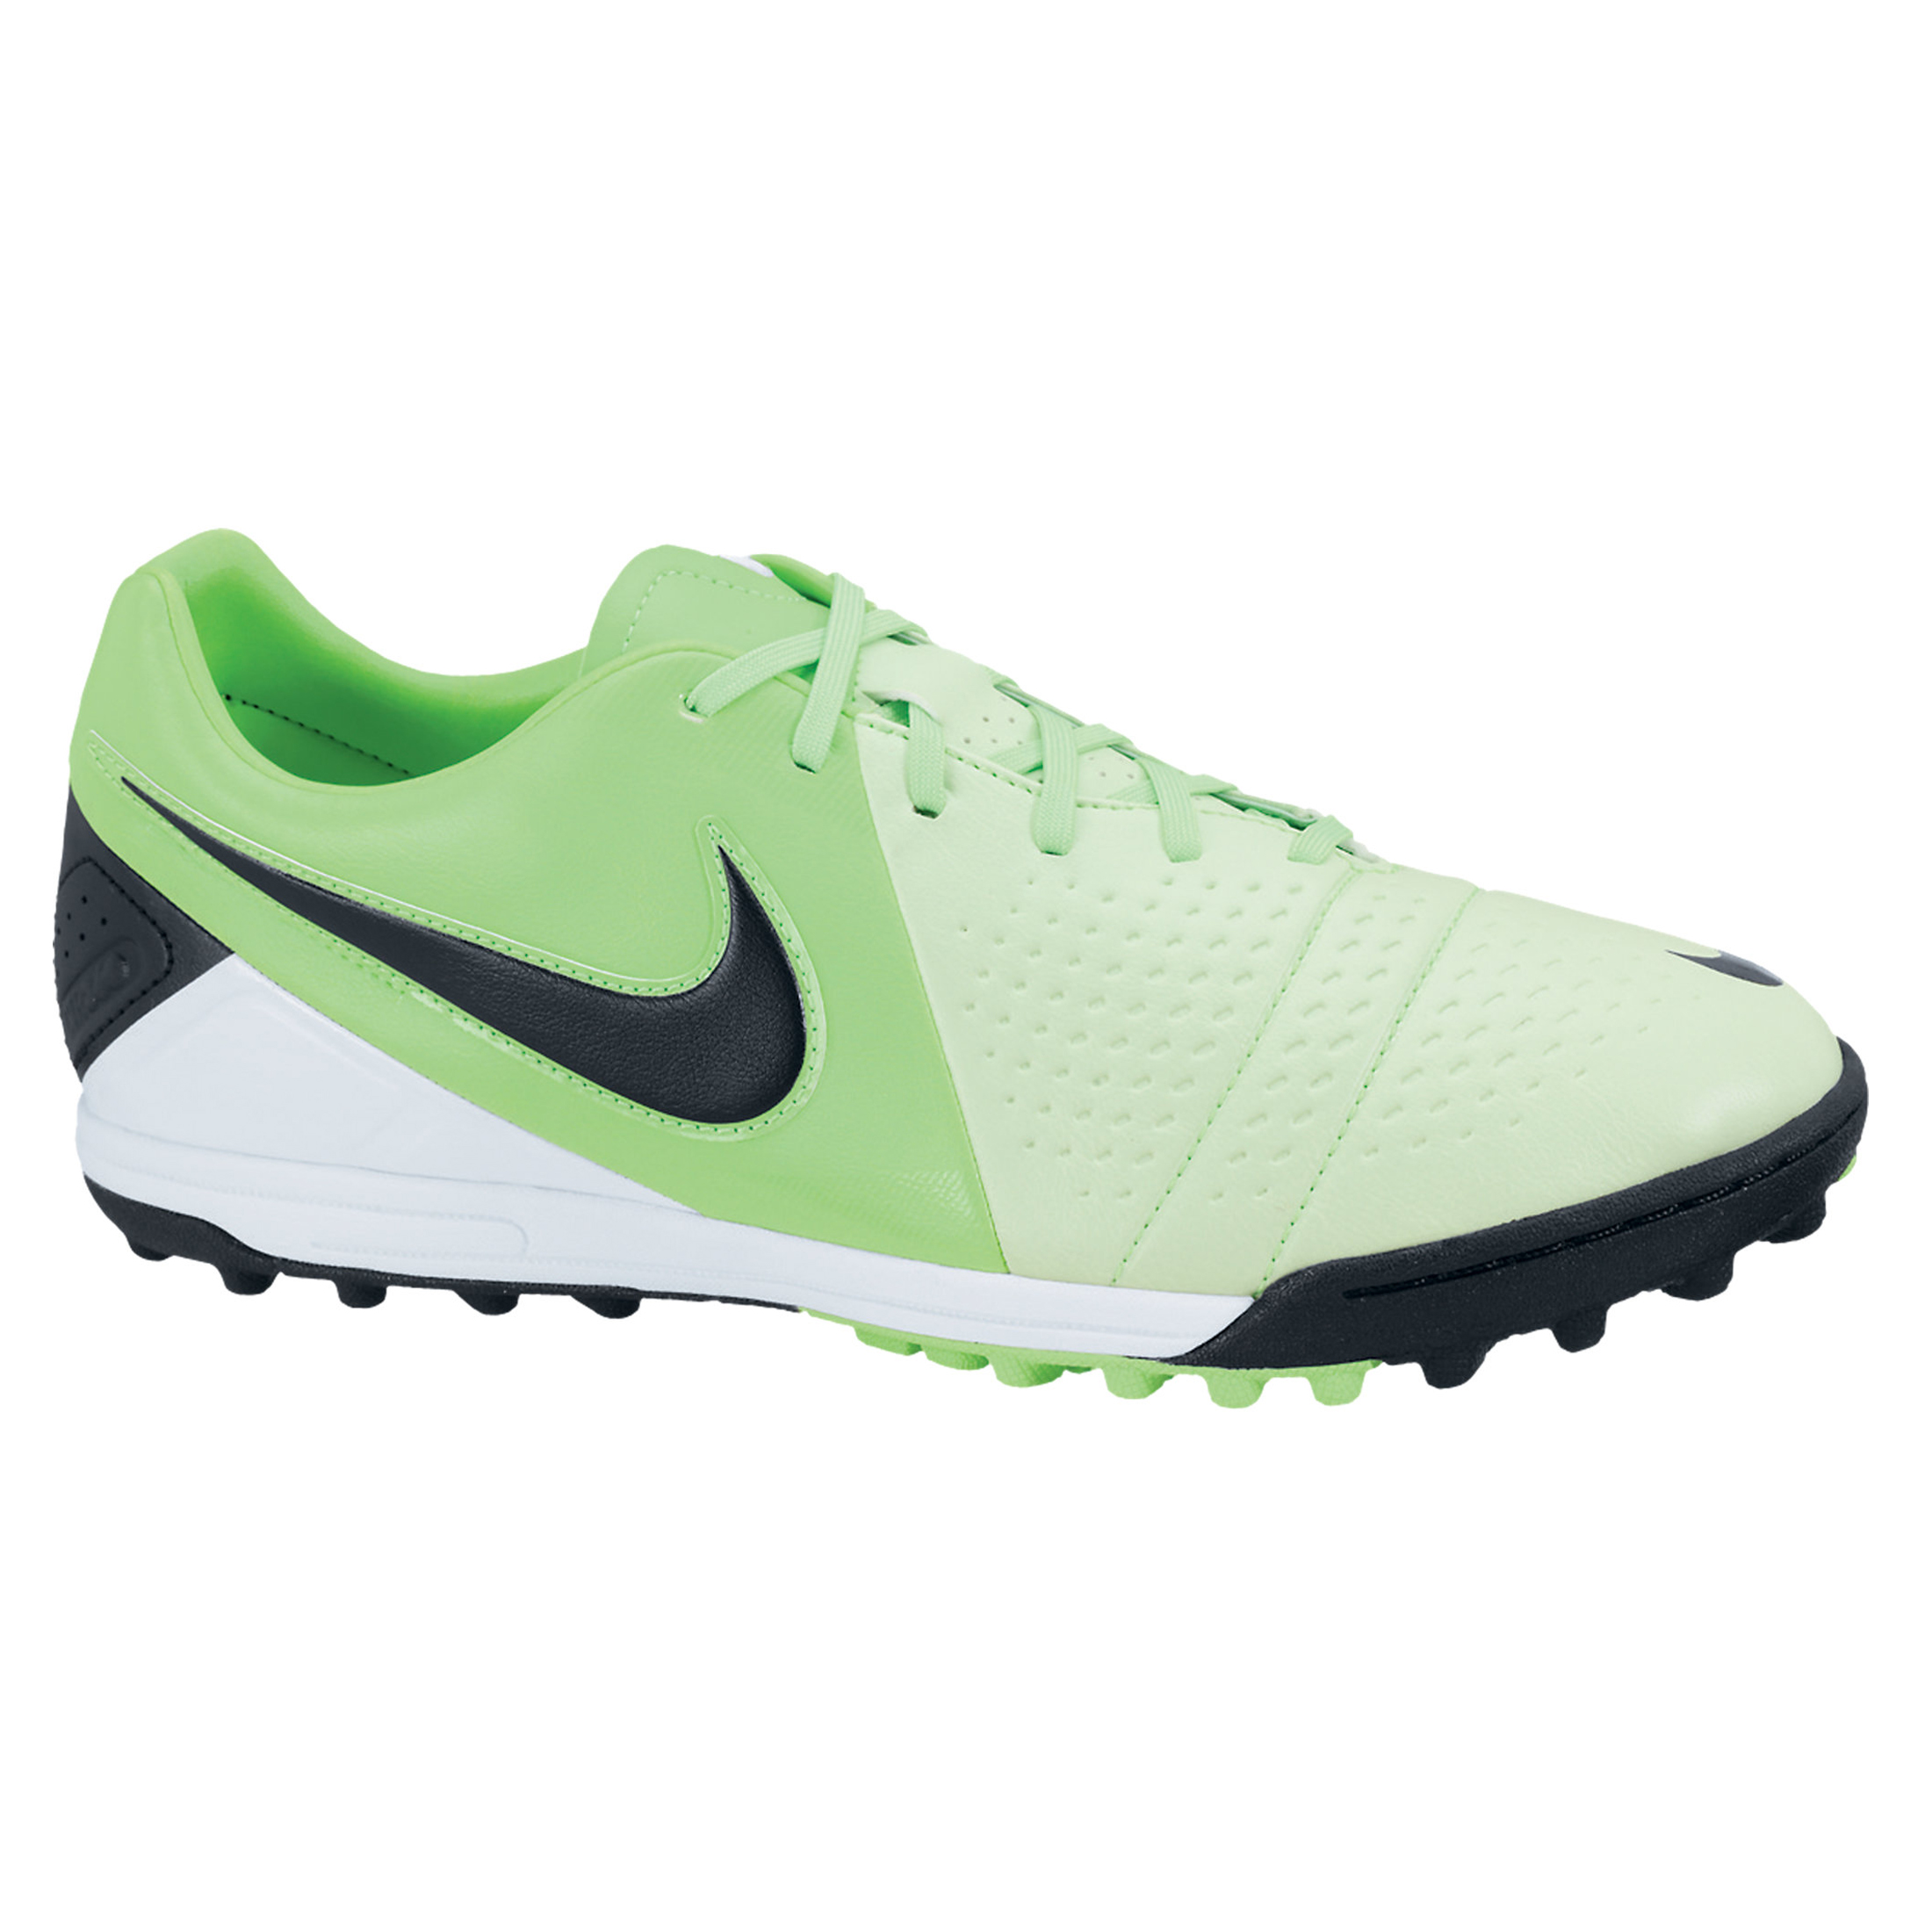 Nike CTR360 Libretto III Astroturf Trainers - Fresh Mint/Black/Neo Lime